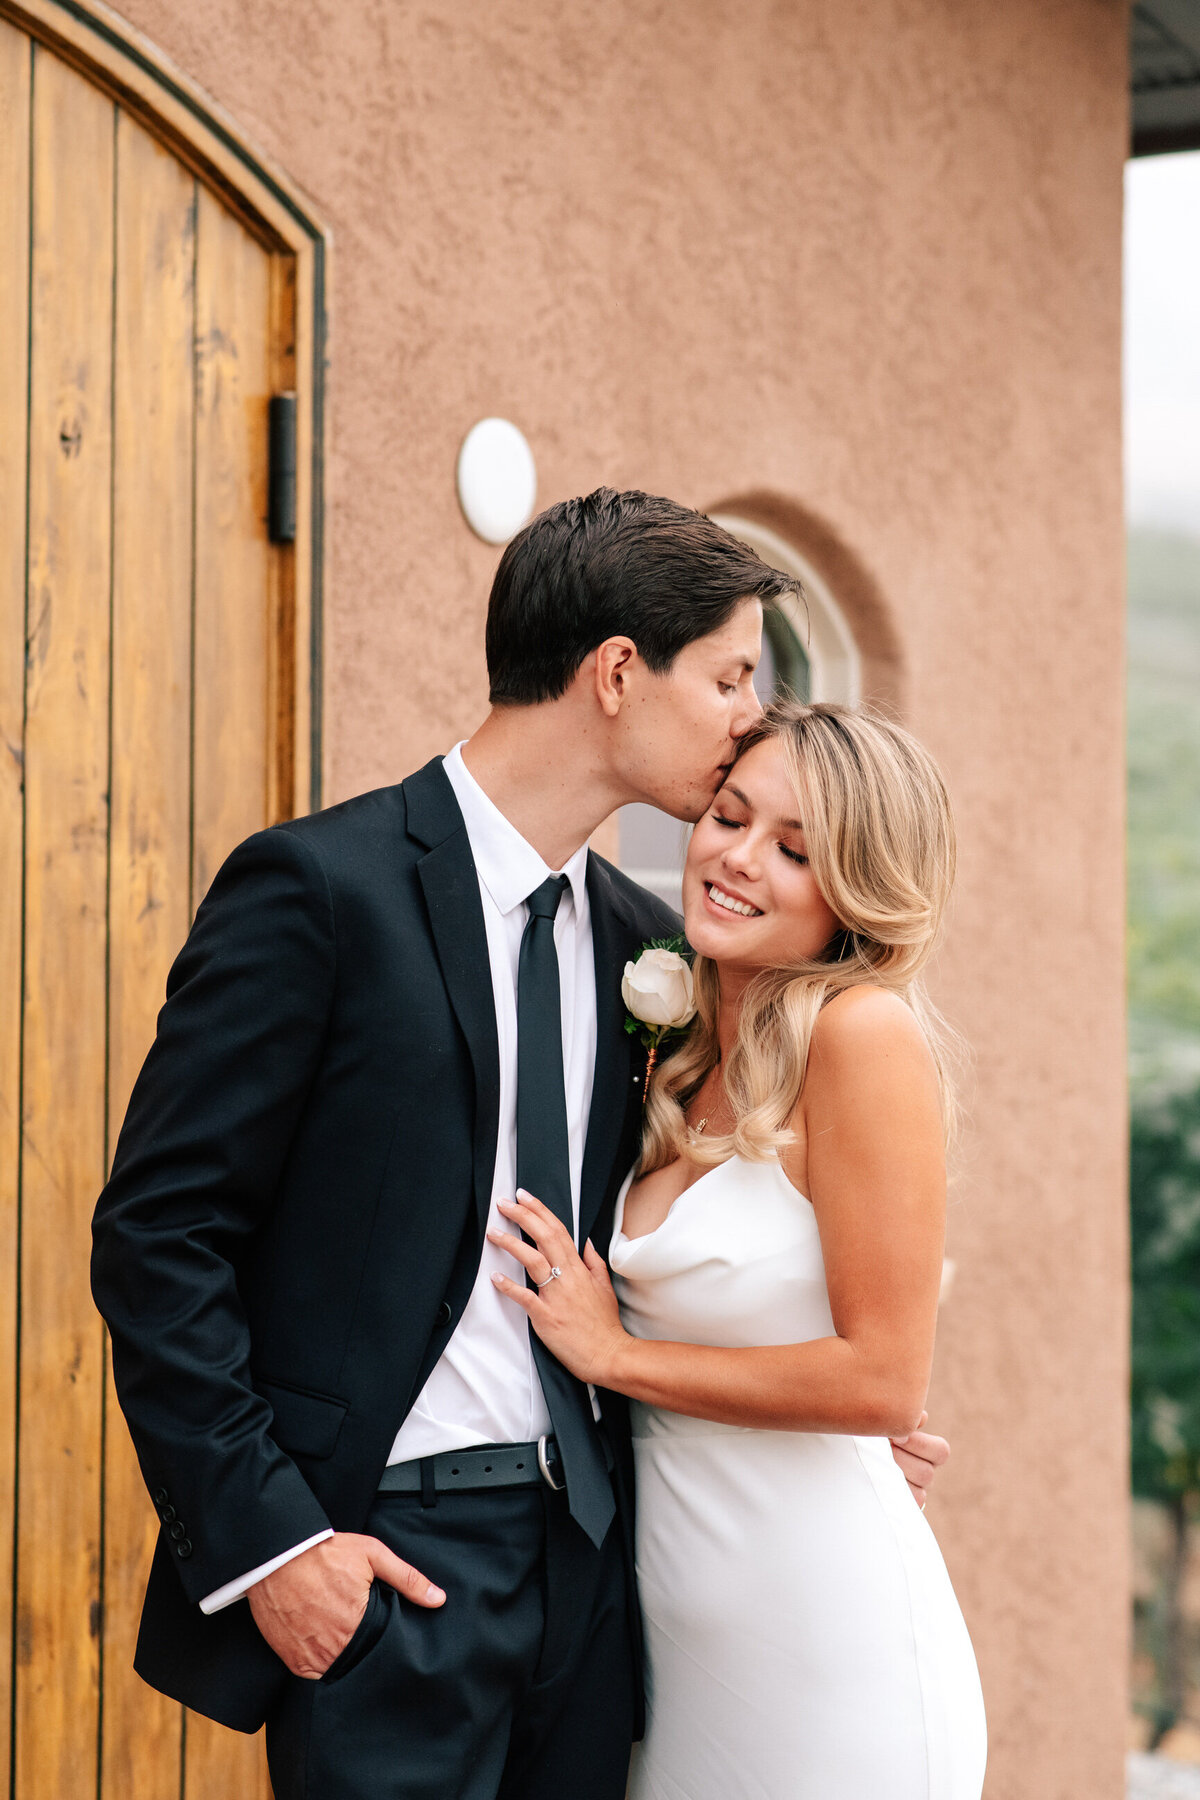 Groom kissing bride's forehead at Tsillan Cellars winery in Chelan, WA